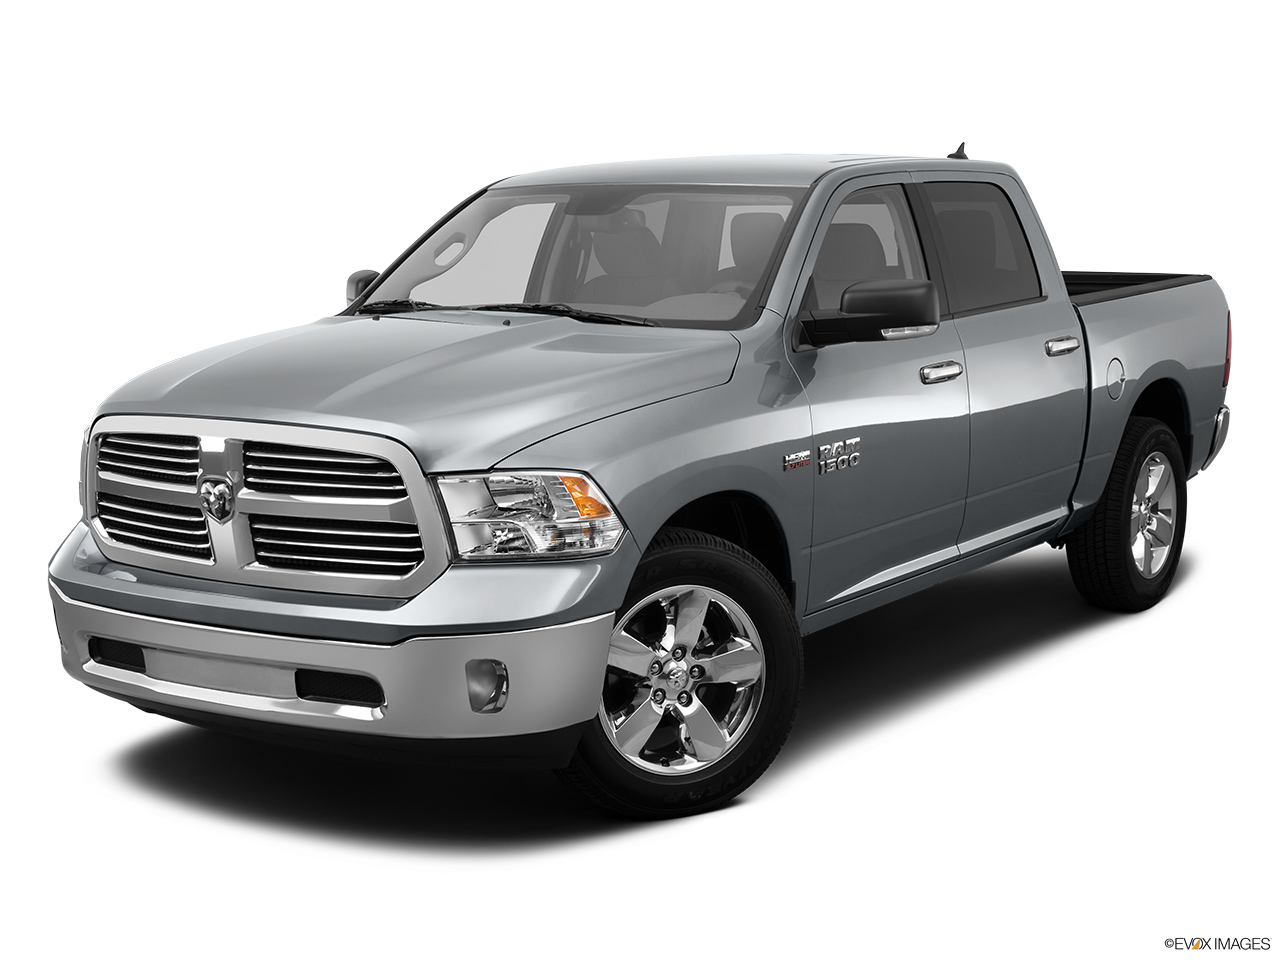 2014 ram 1500 2wd crew cab 149 slt. Black Bedroom Furniture Sets. Home Design Ideas